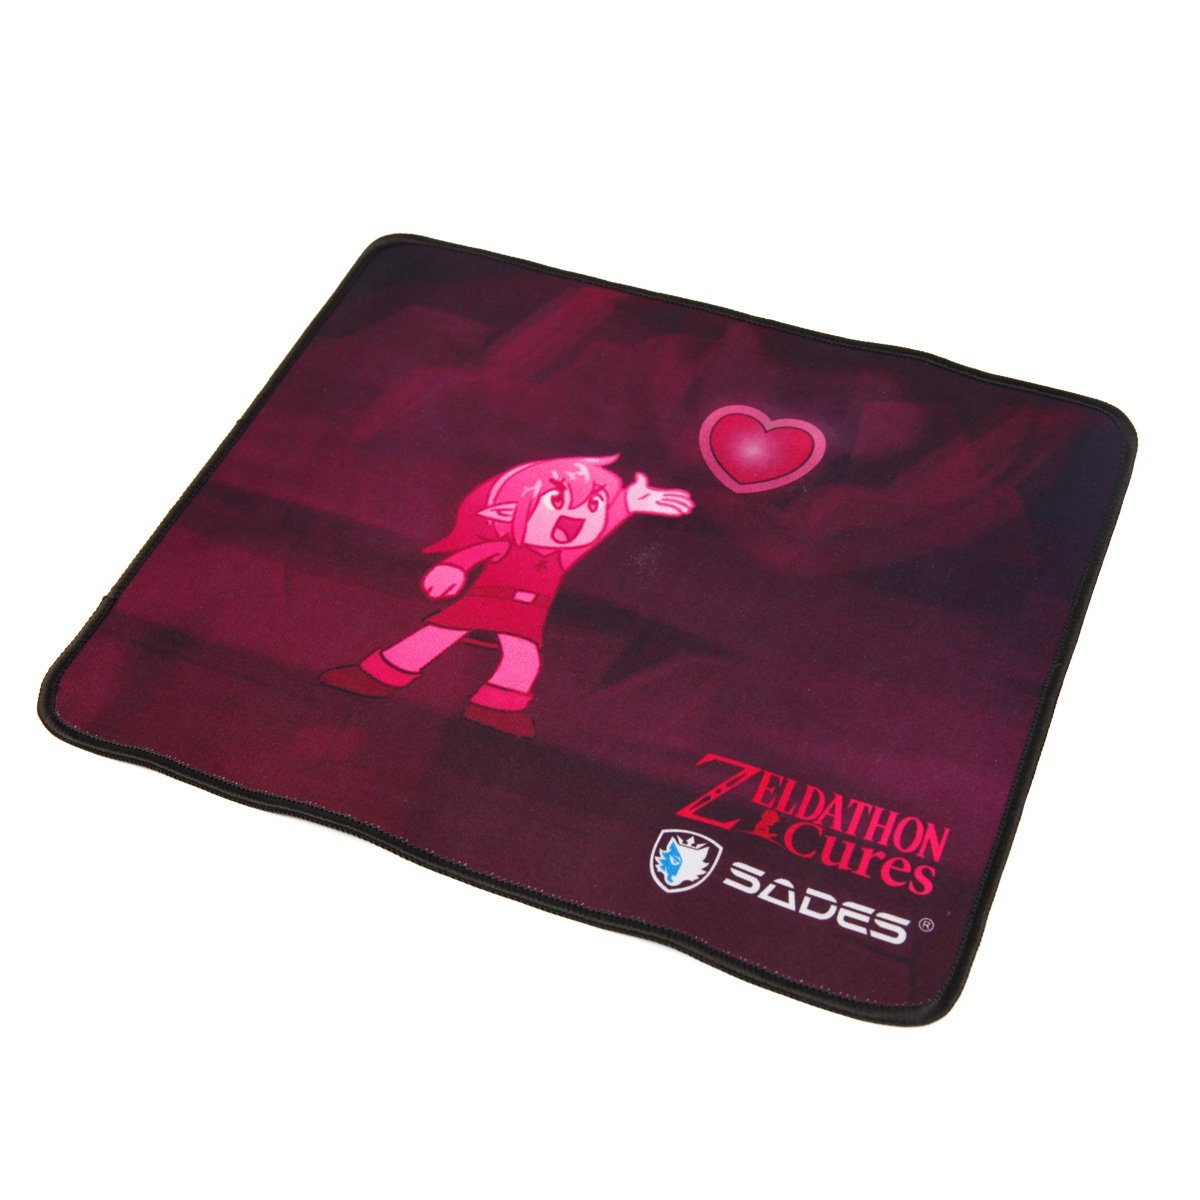 Sades Go4zelda Zeldathon Cures Gaming Mouse Pad 12x10 Knight Pro Bongiovi 71 Headset Inches Computers Accessories